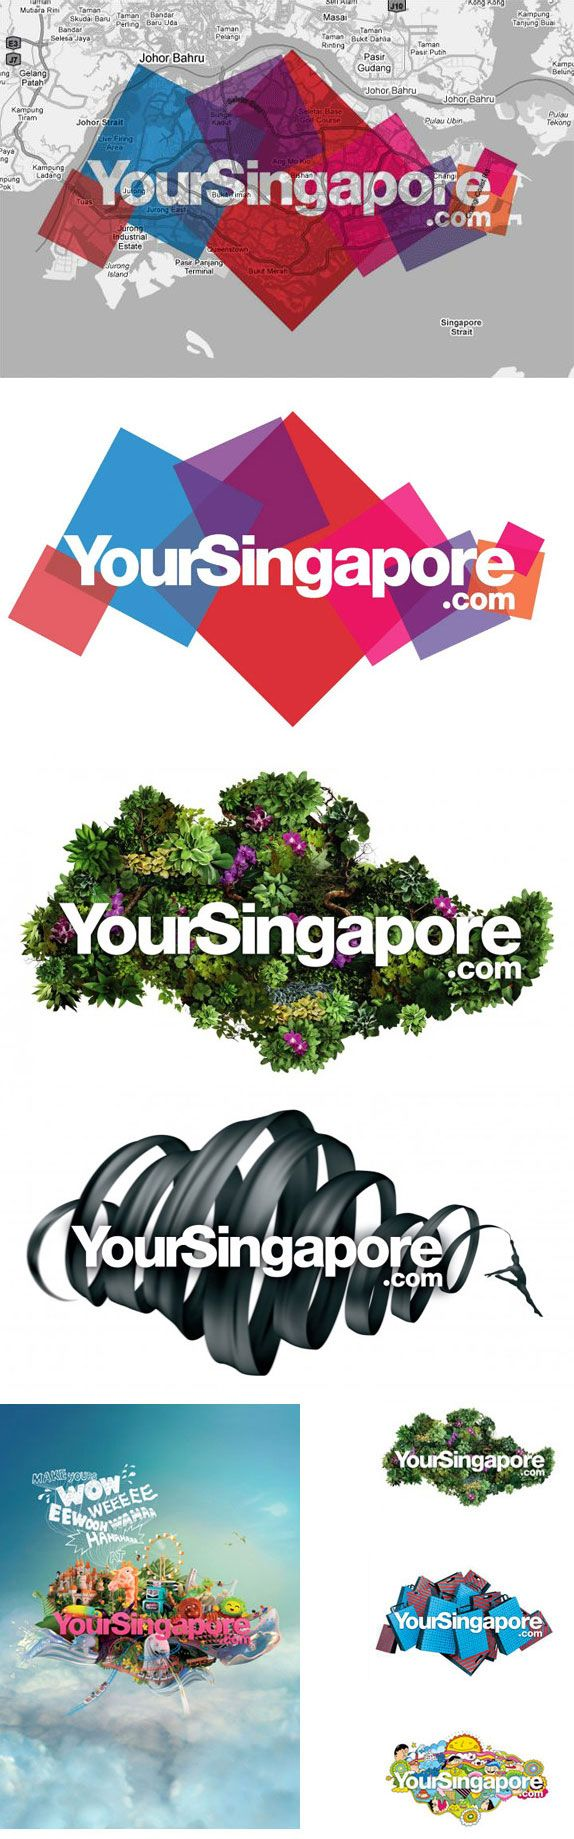 Your Singapore by BBH Asia-Pacific #city_brand 2010 PD